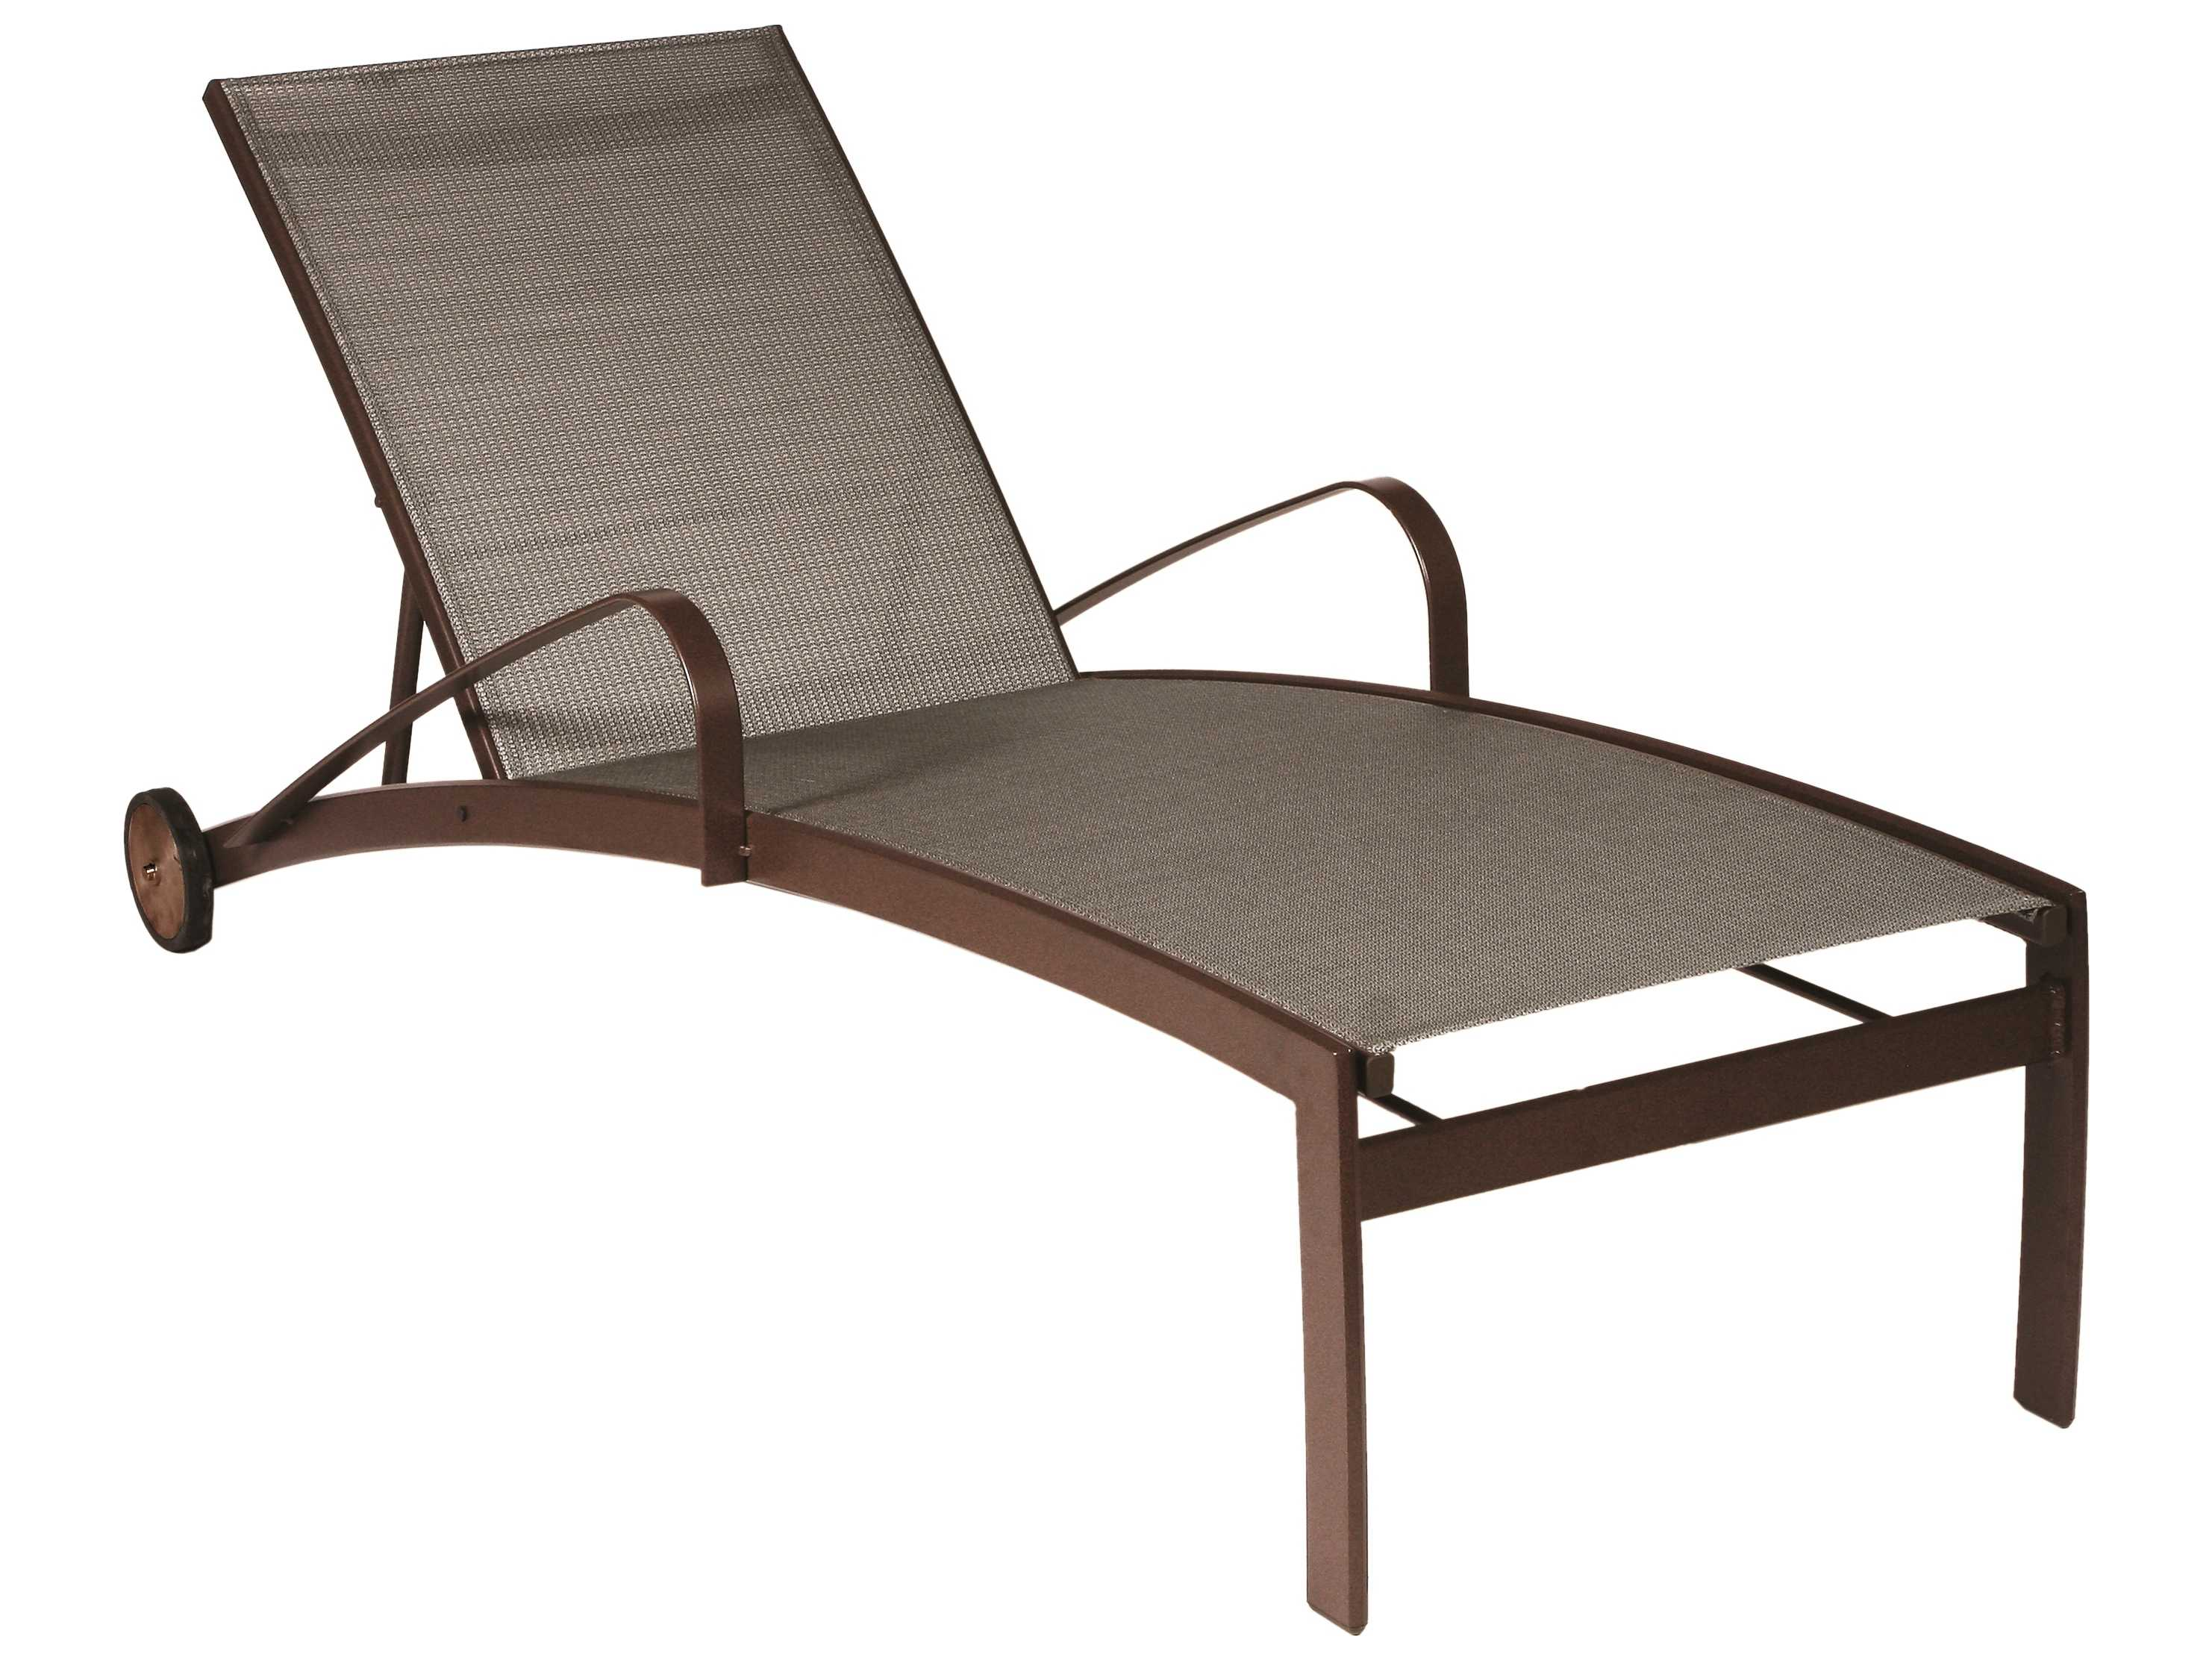 Suncoast vision sling cast aluminum chaise lounge with for Aluminum chaise lounges